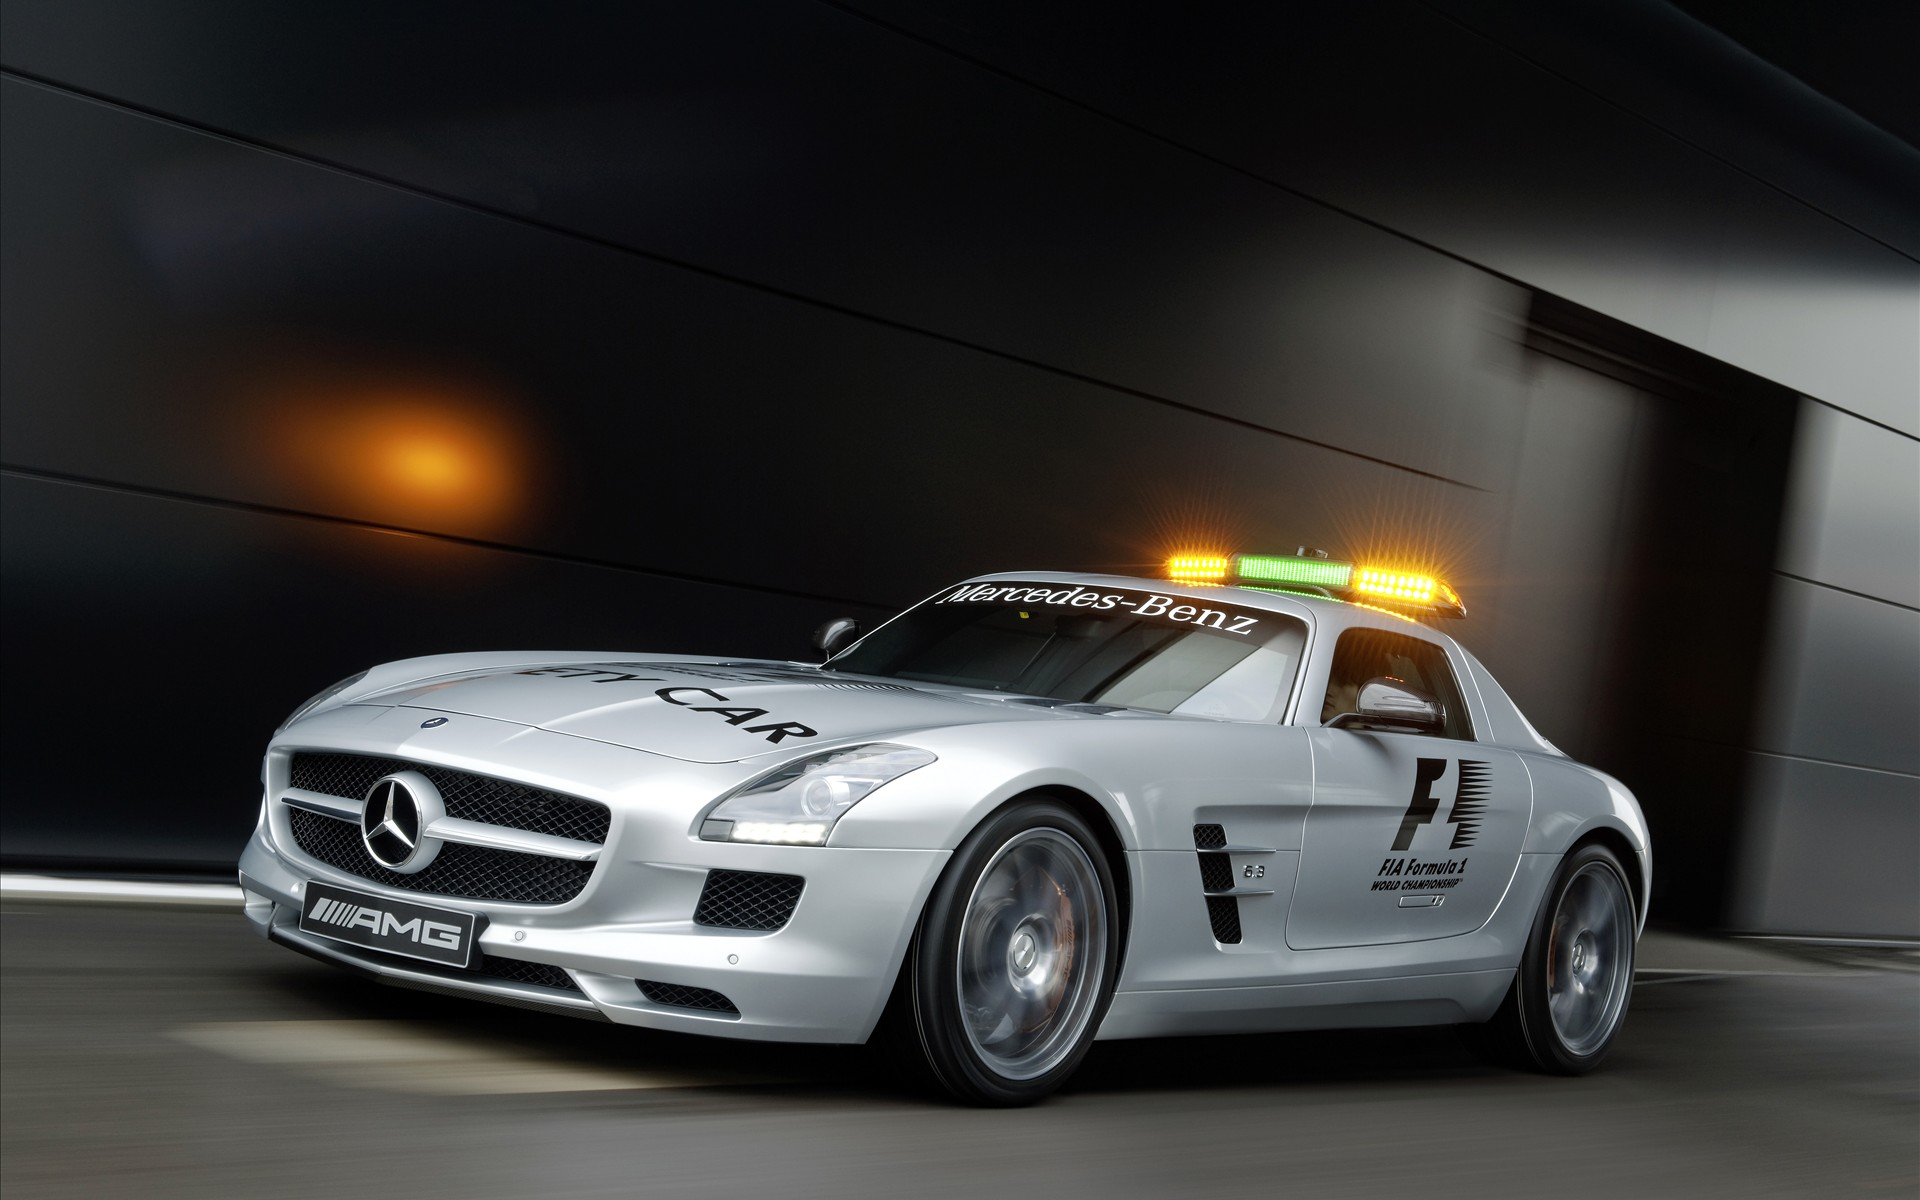 Mercedes Benz SLS AMG F1 Safety Car 2010 Wallpapers 1920x1200